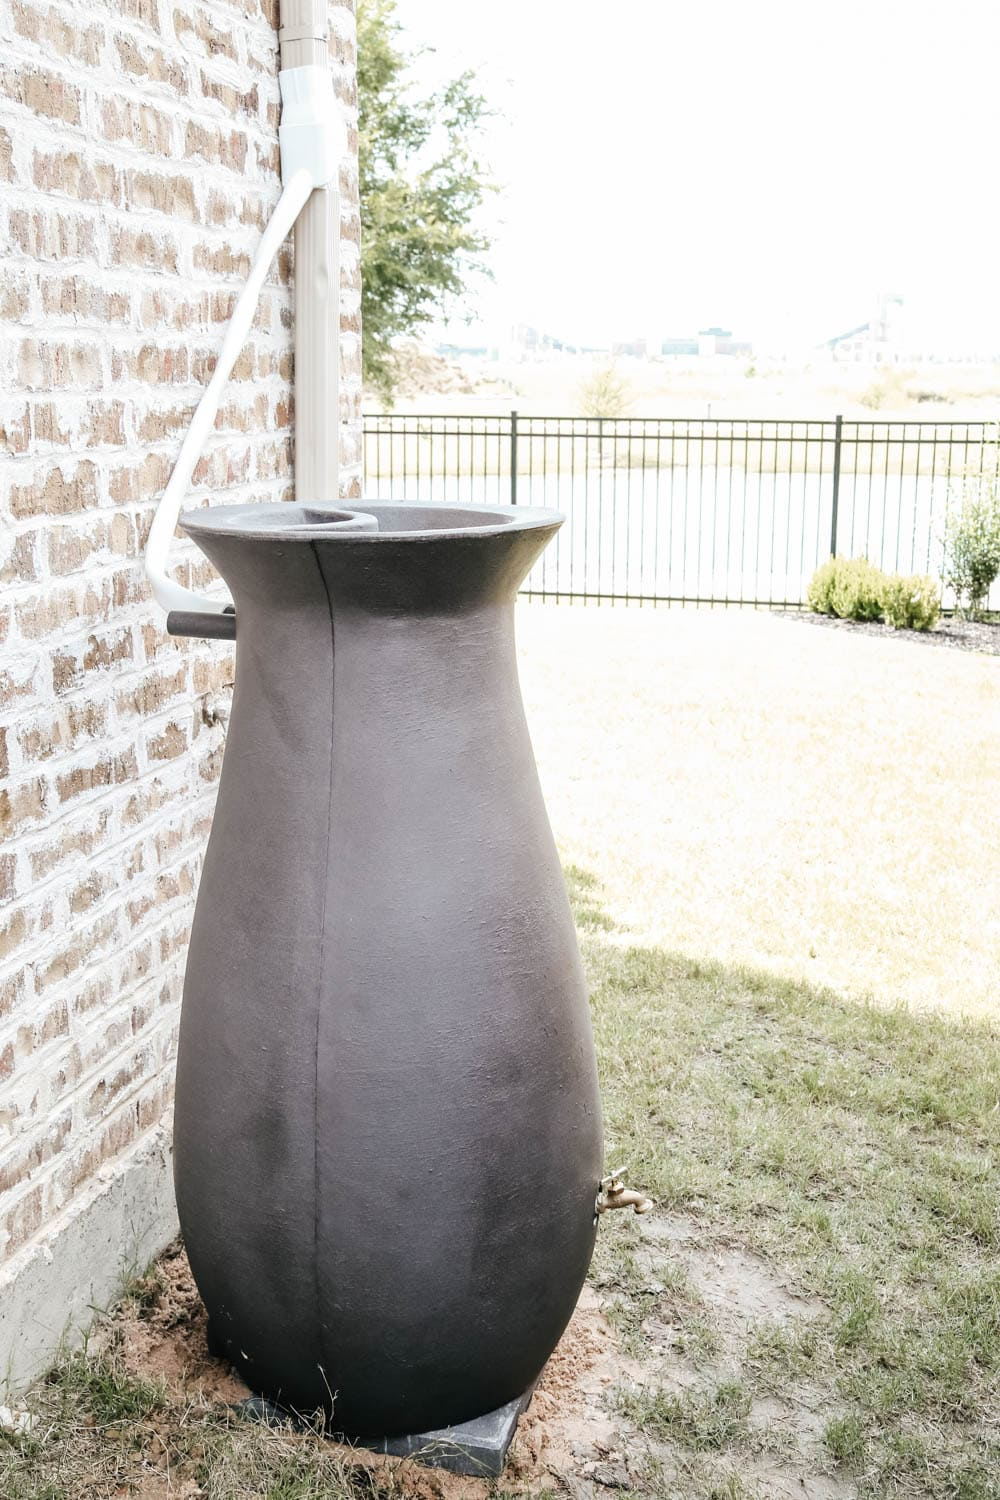 Install a rain barrel system for your home and save money and conserve your water supply. Simple step-by-step tutorial for installing a rain barrel. #ABlissfulNest